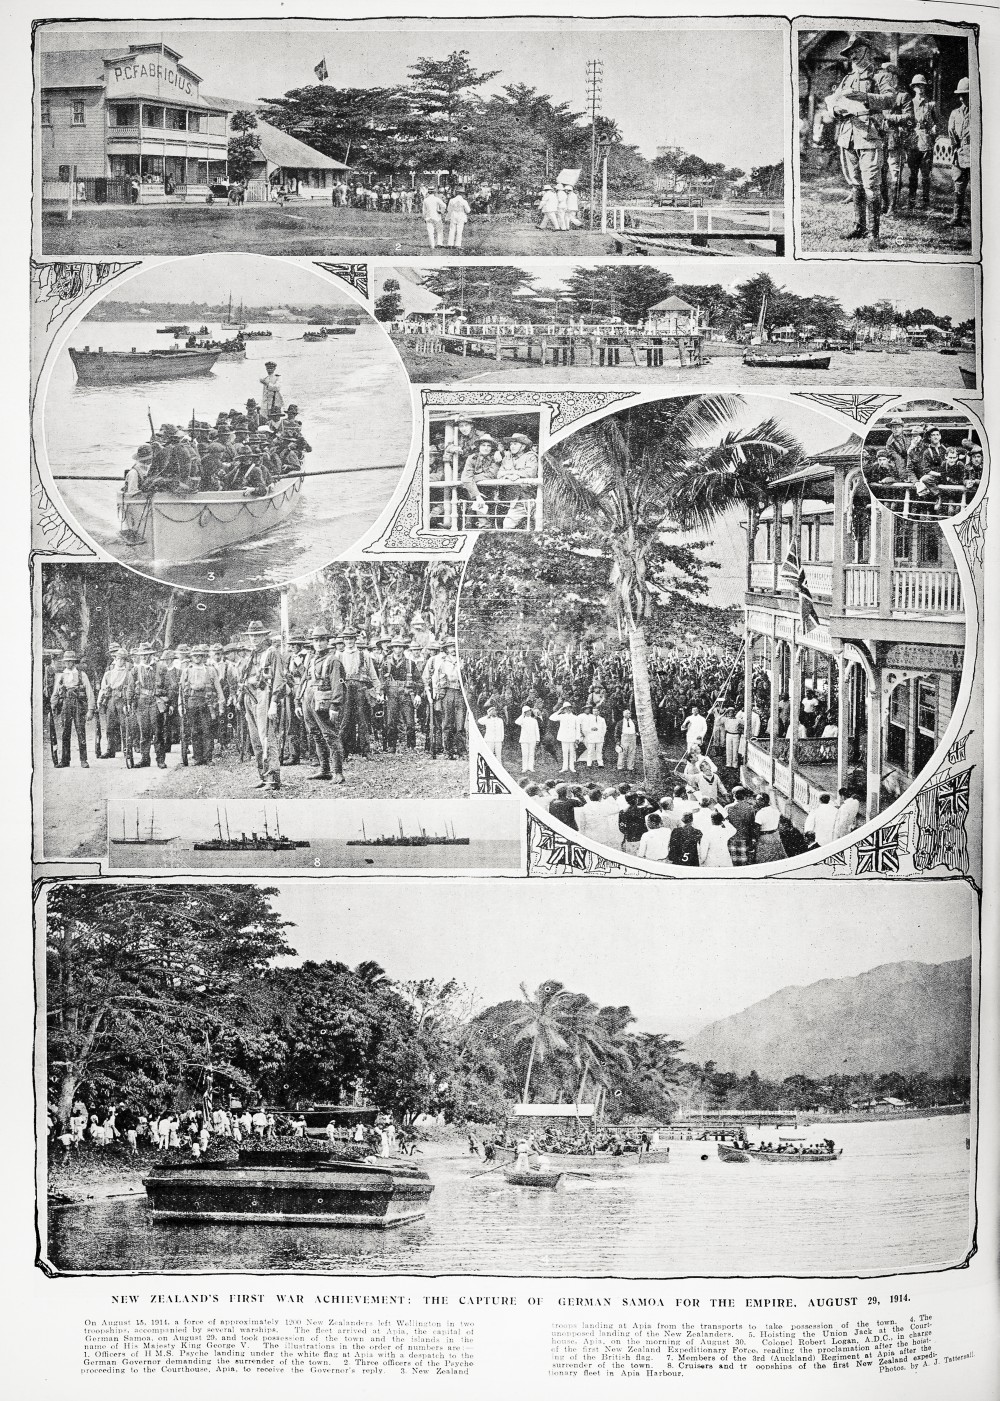 New Zealand's first war achievement: the capture of German Samoa for the Empire, August 29, 1914. - Auckland Libraries